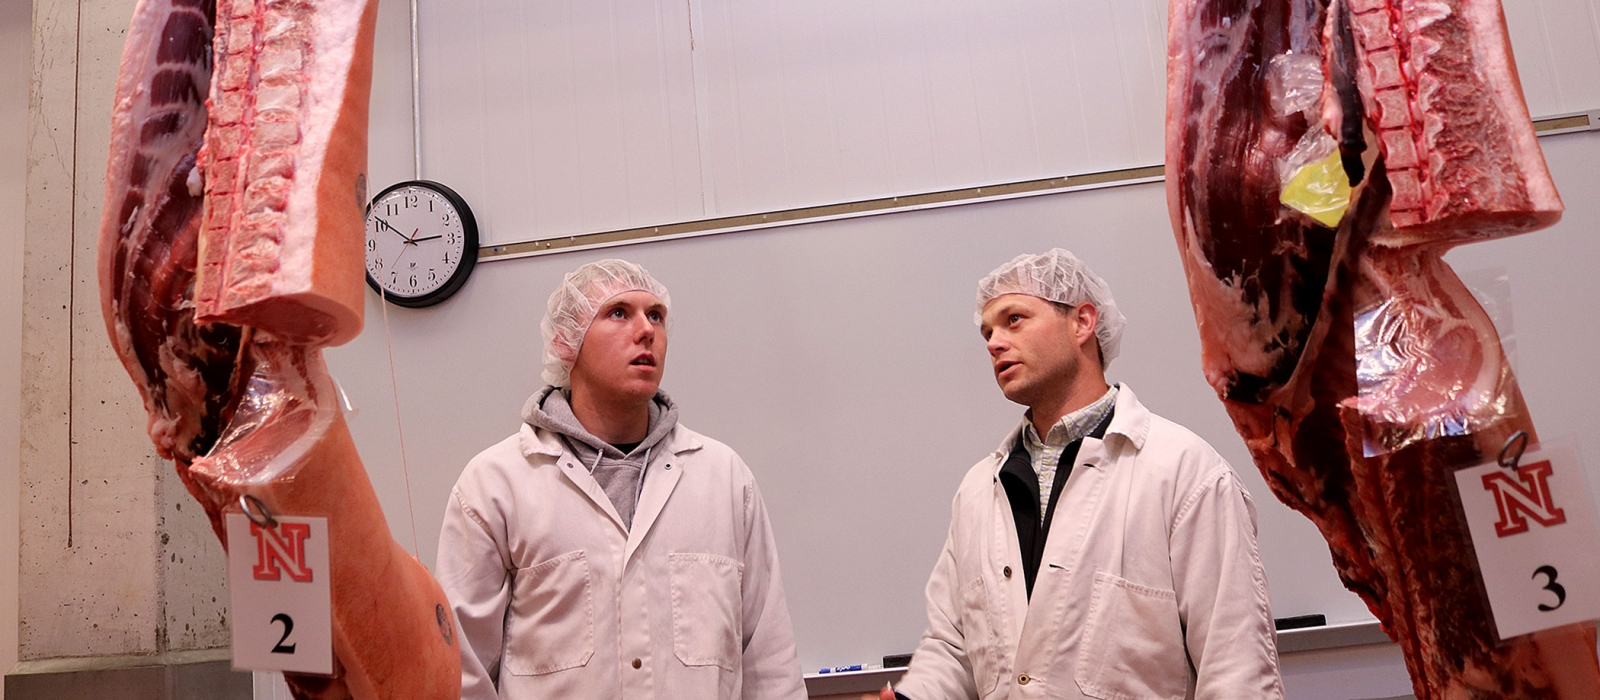 Two meat science students looks at hanging meat in the meat lab.